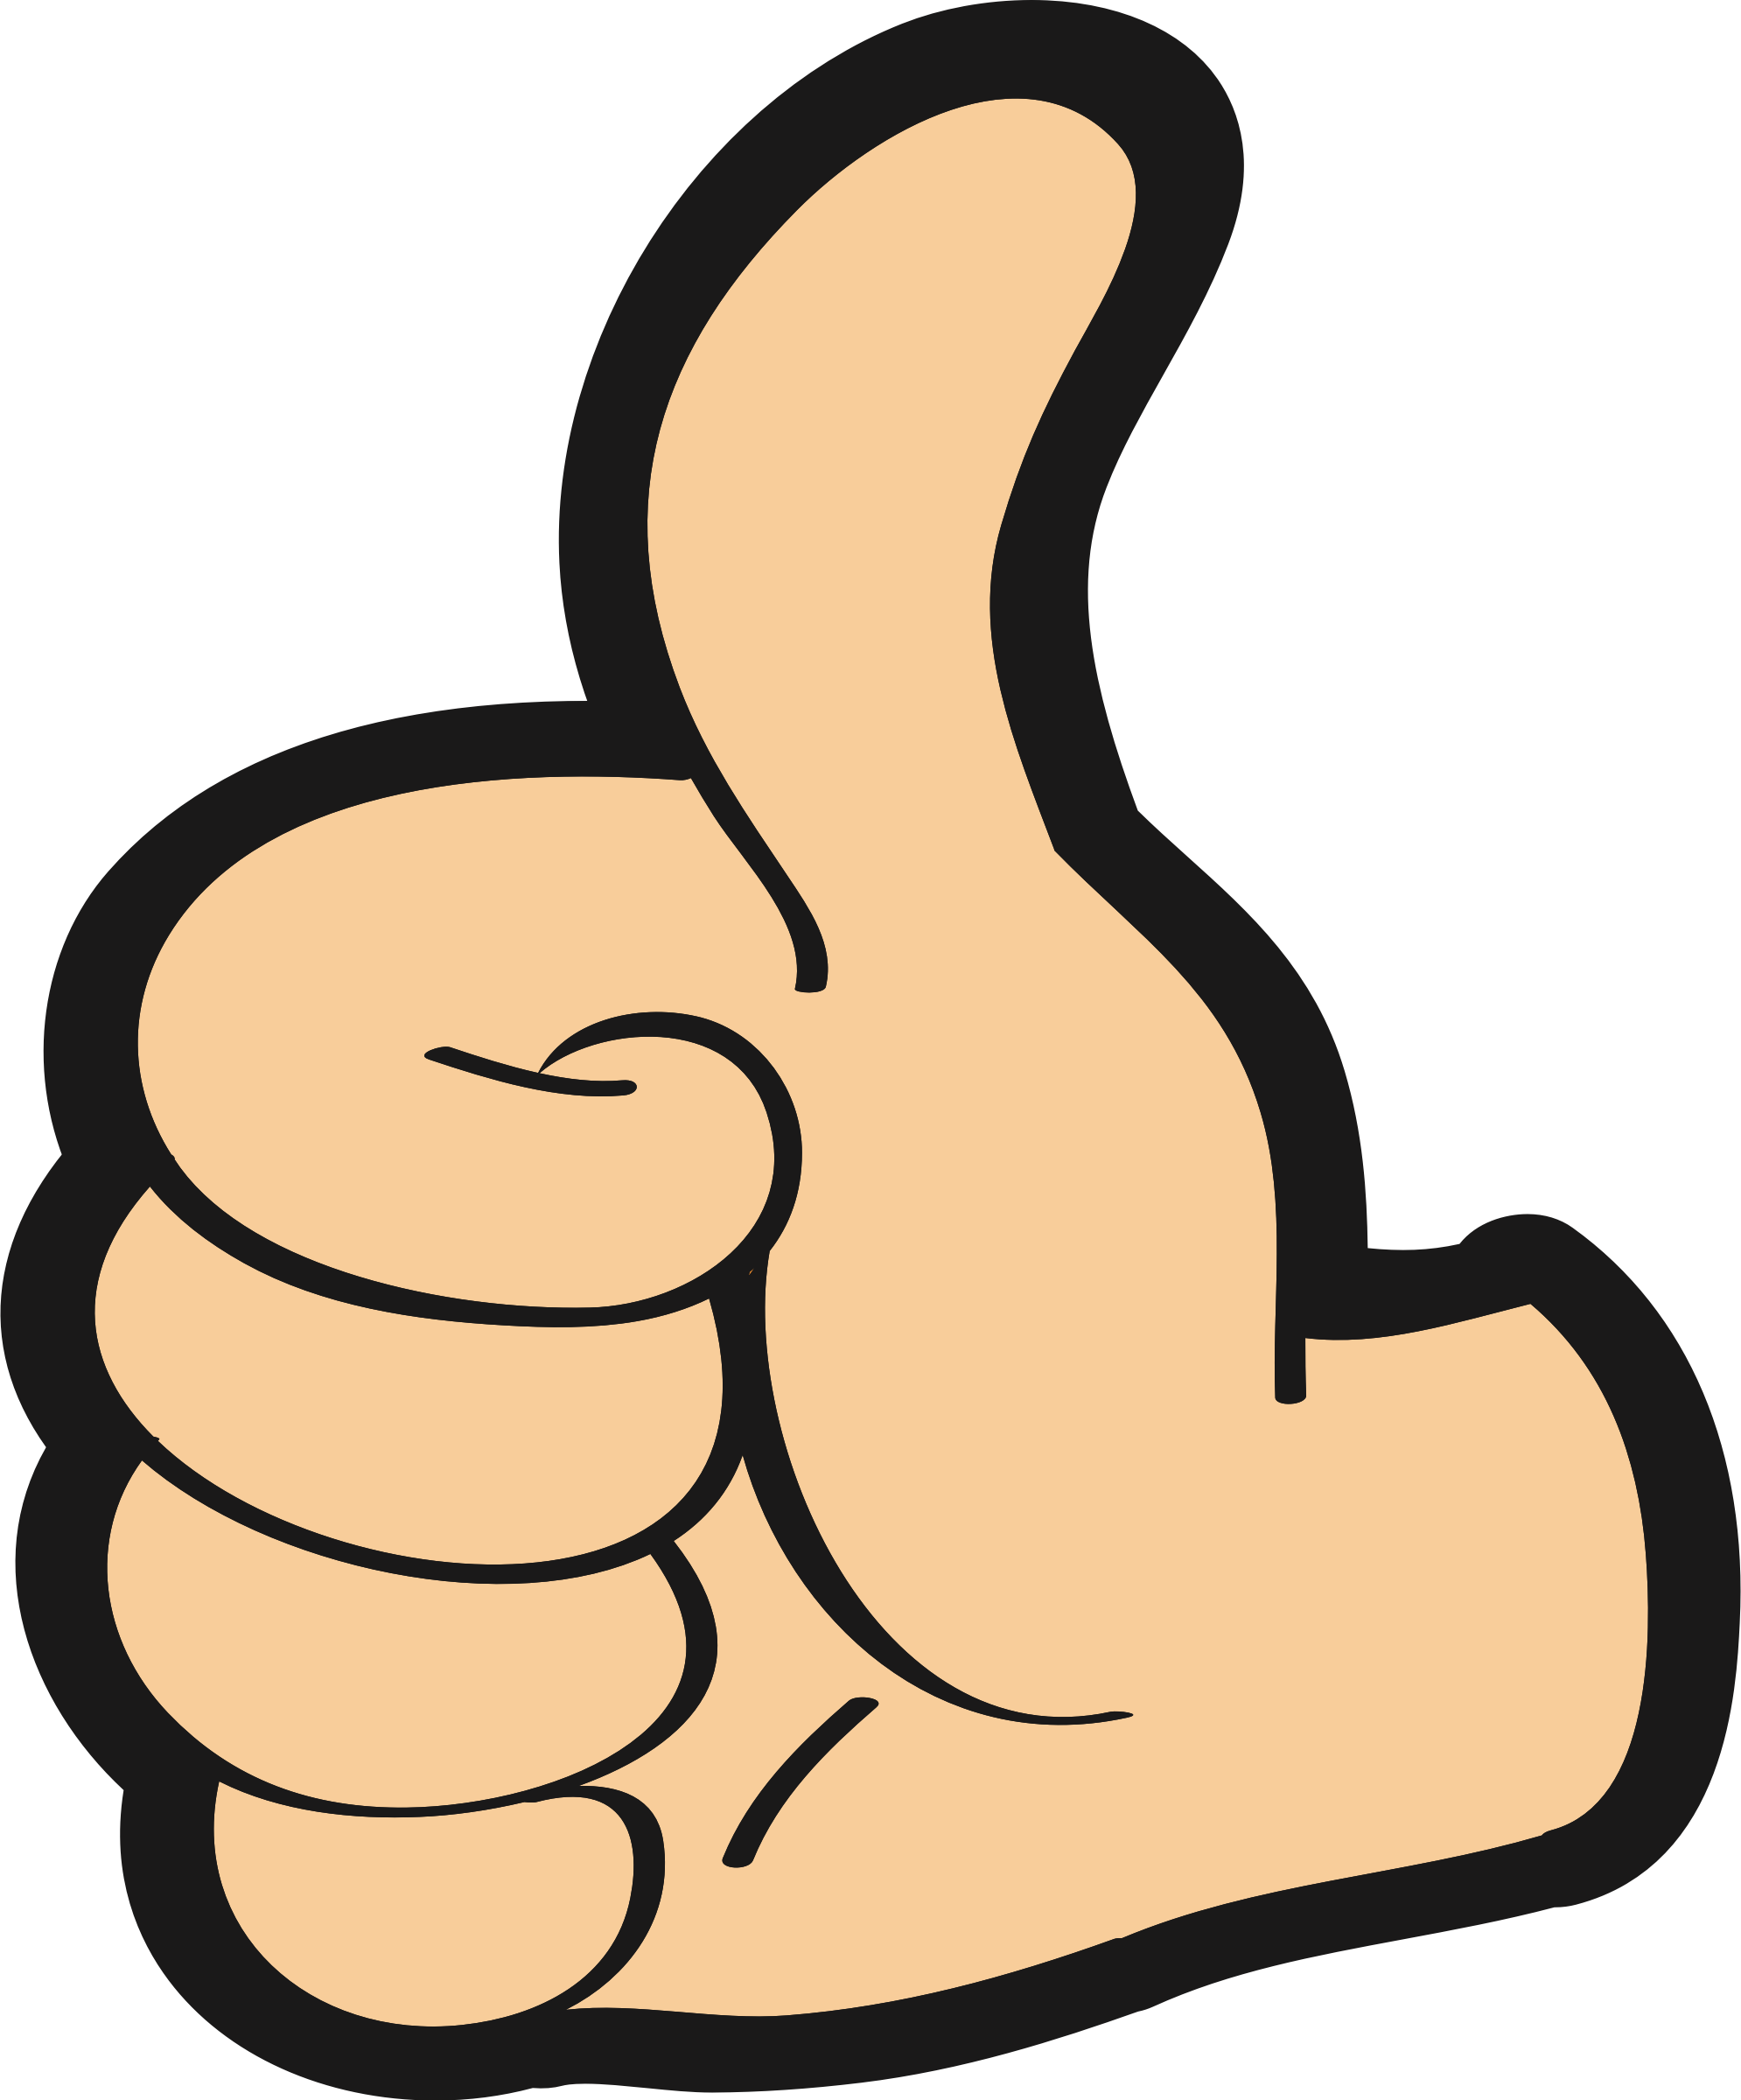 clipart thumbs up rh openclipart org thumbs up clip art images thumbs up clip art free